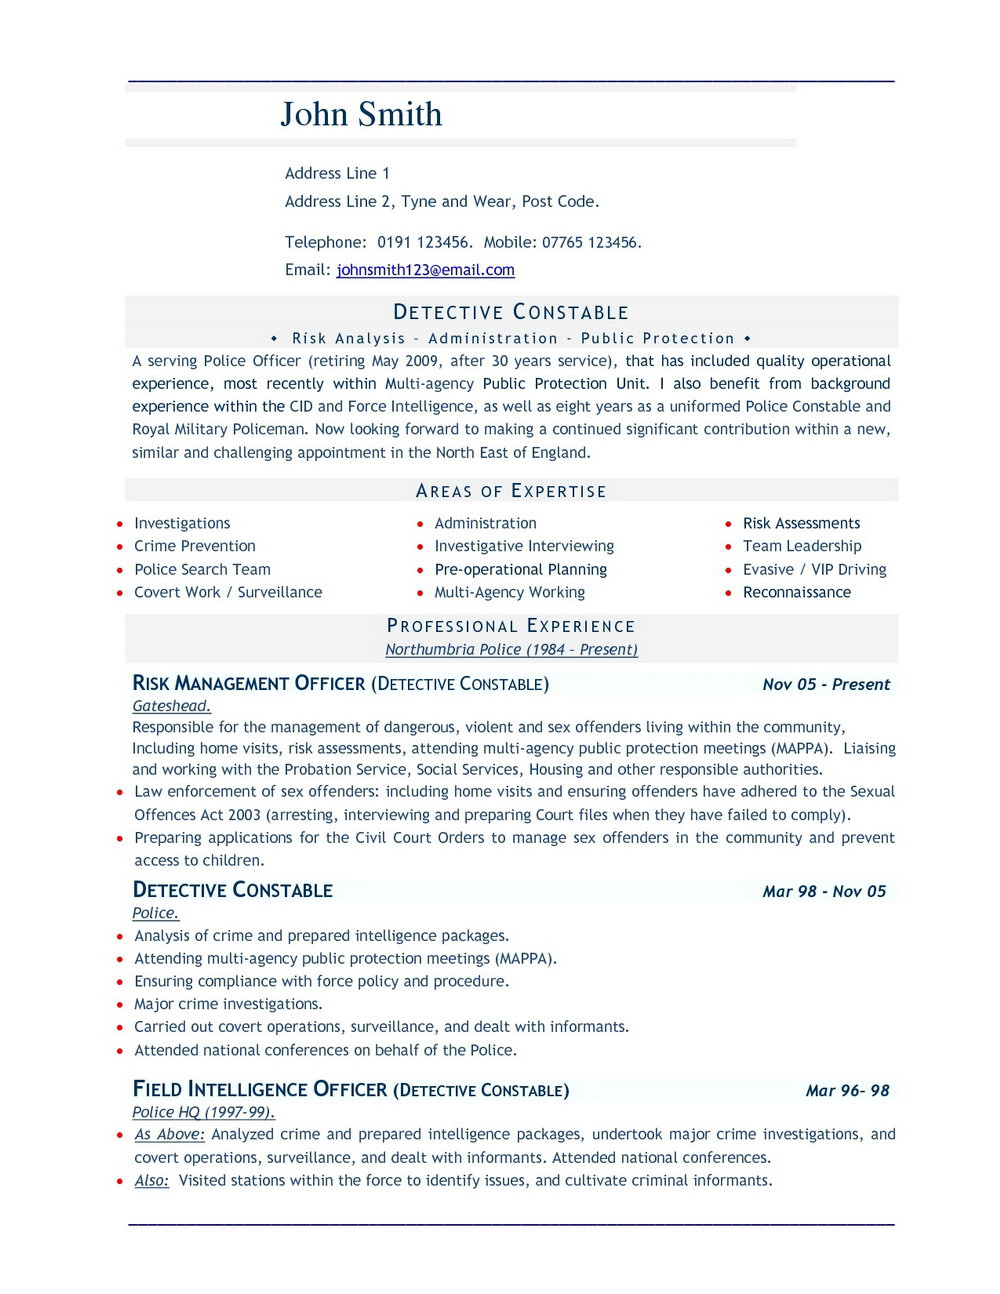 Resume Format Pdf Download Free